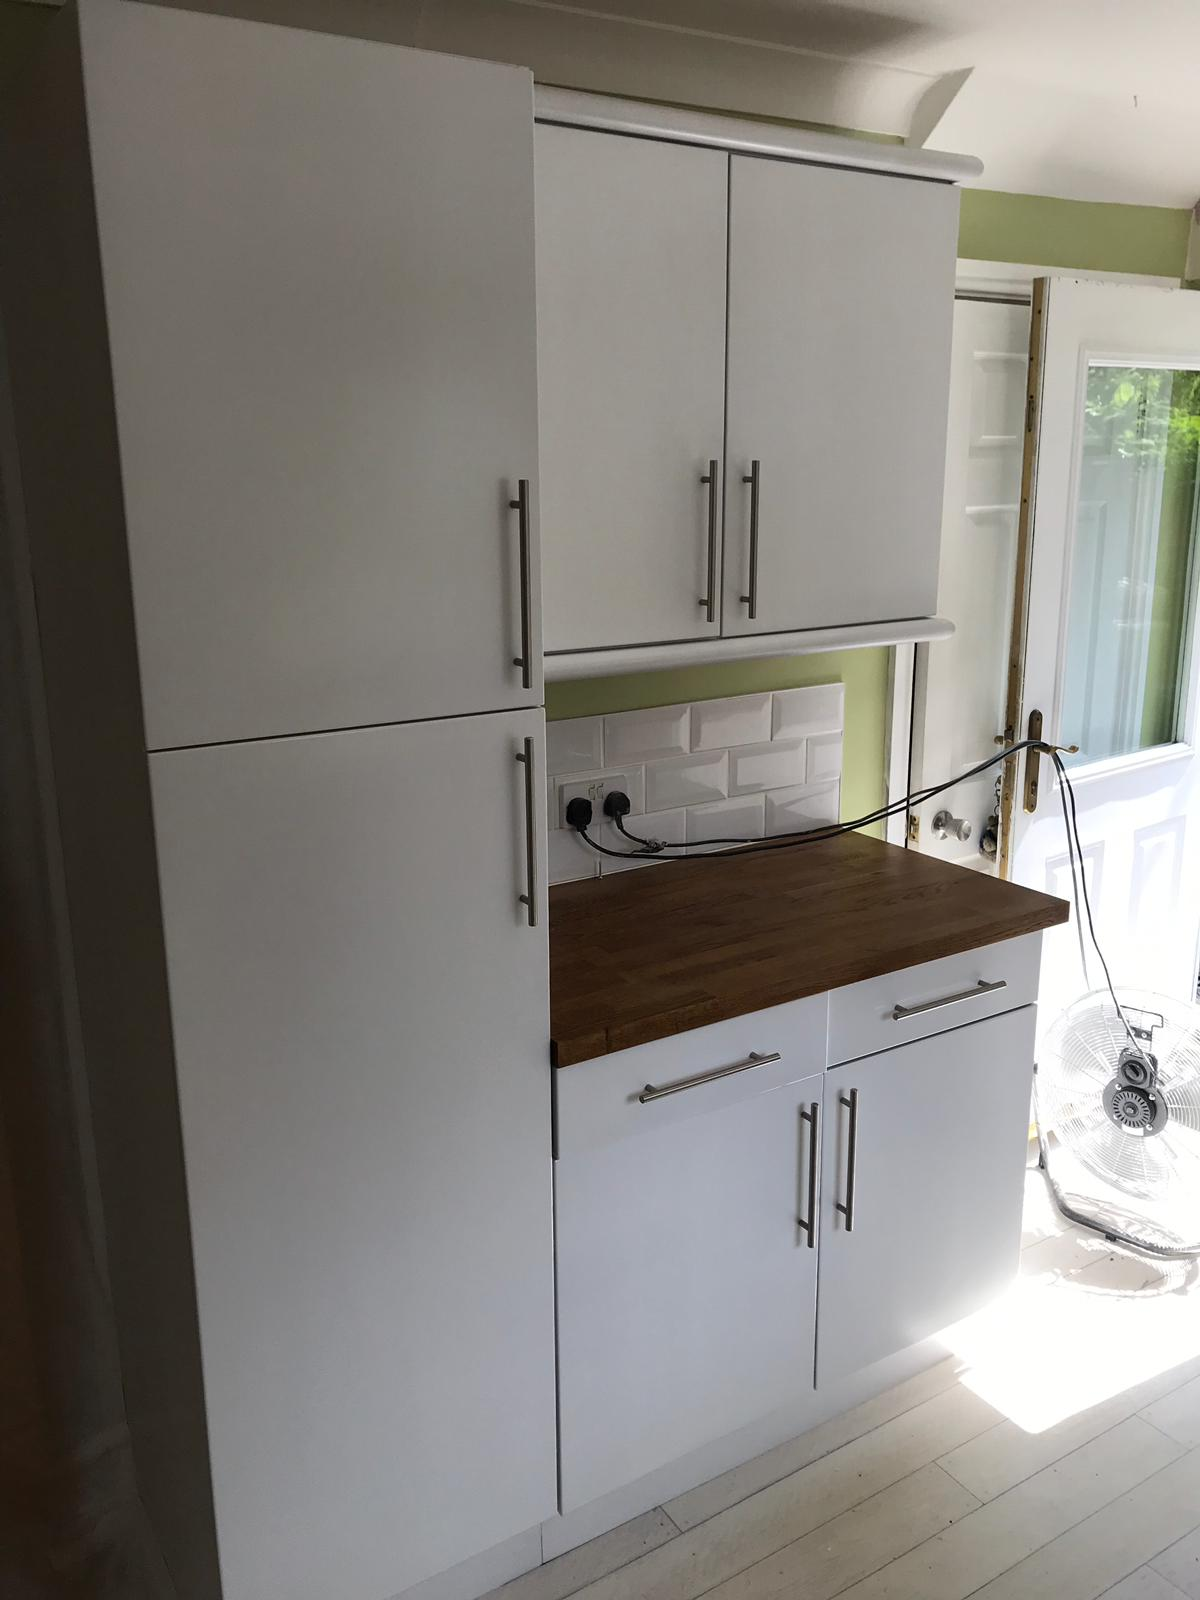 modernise kitchen with spray painting.jpeg